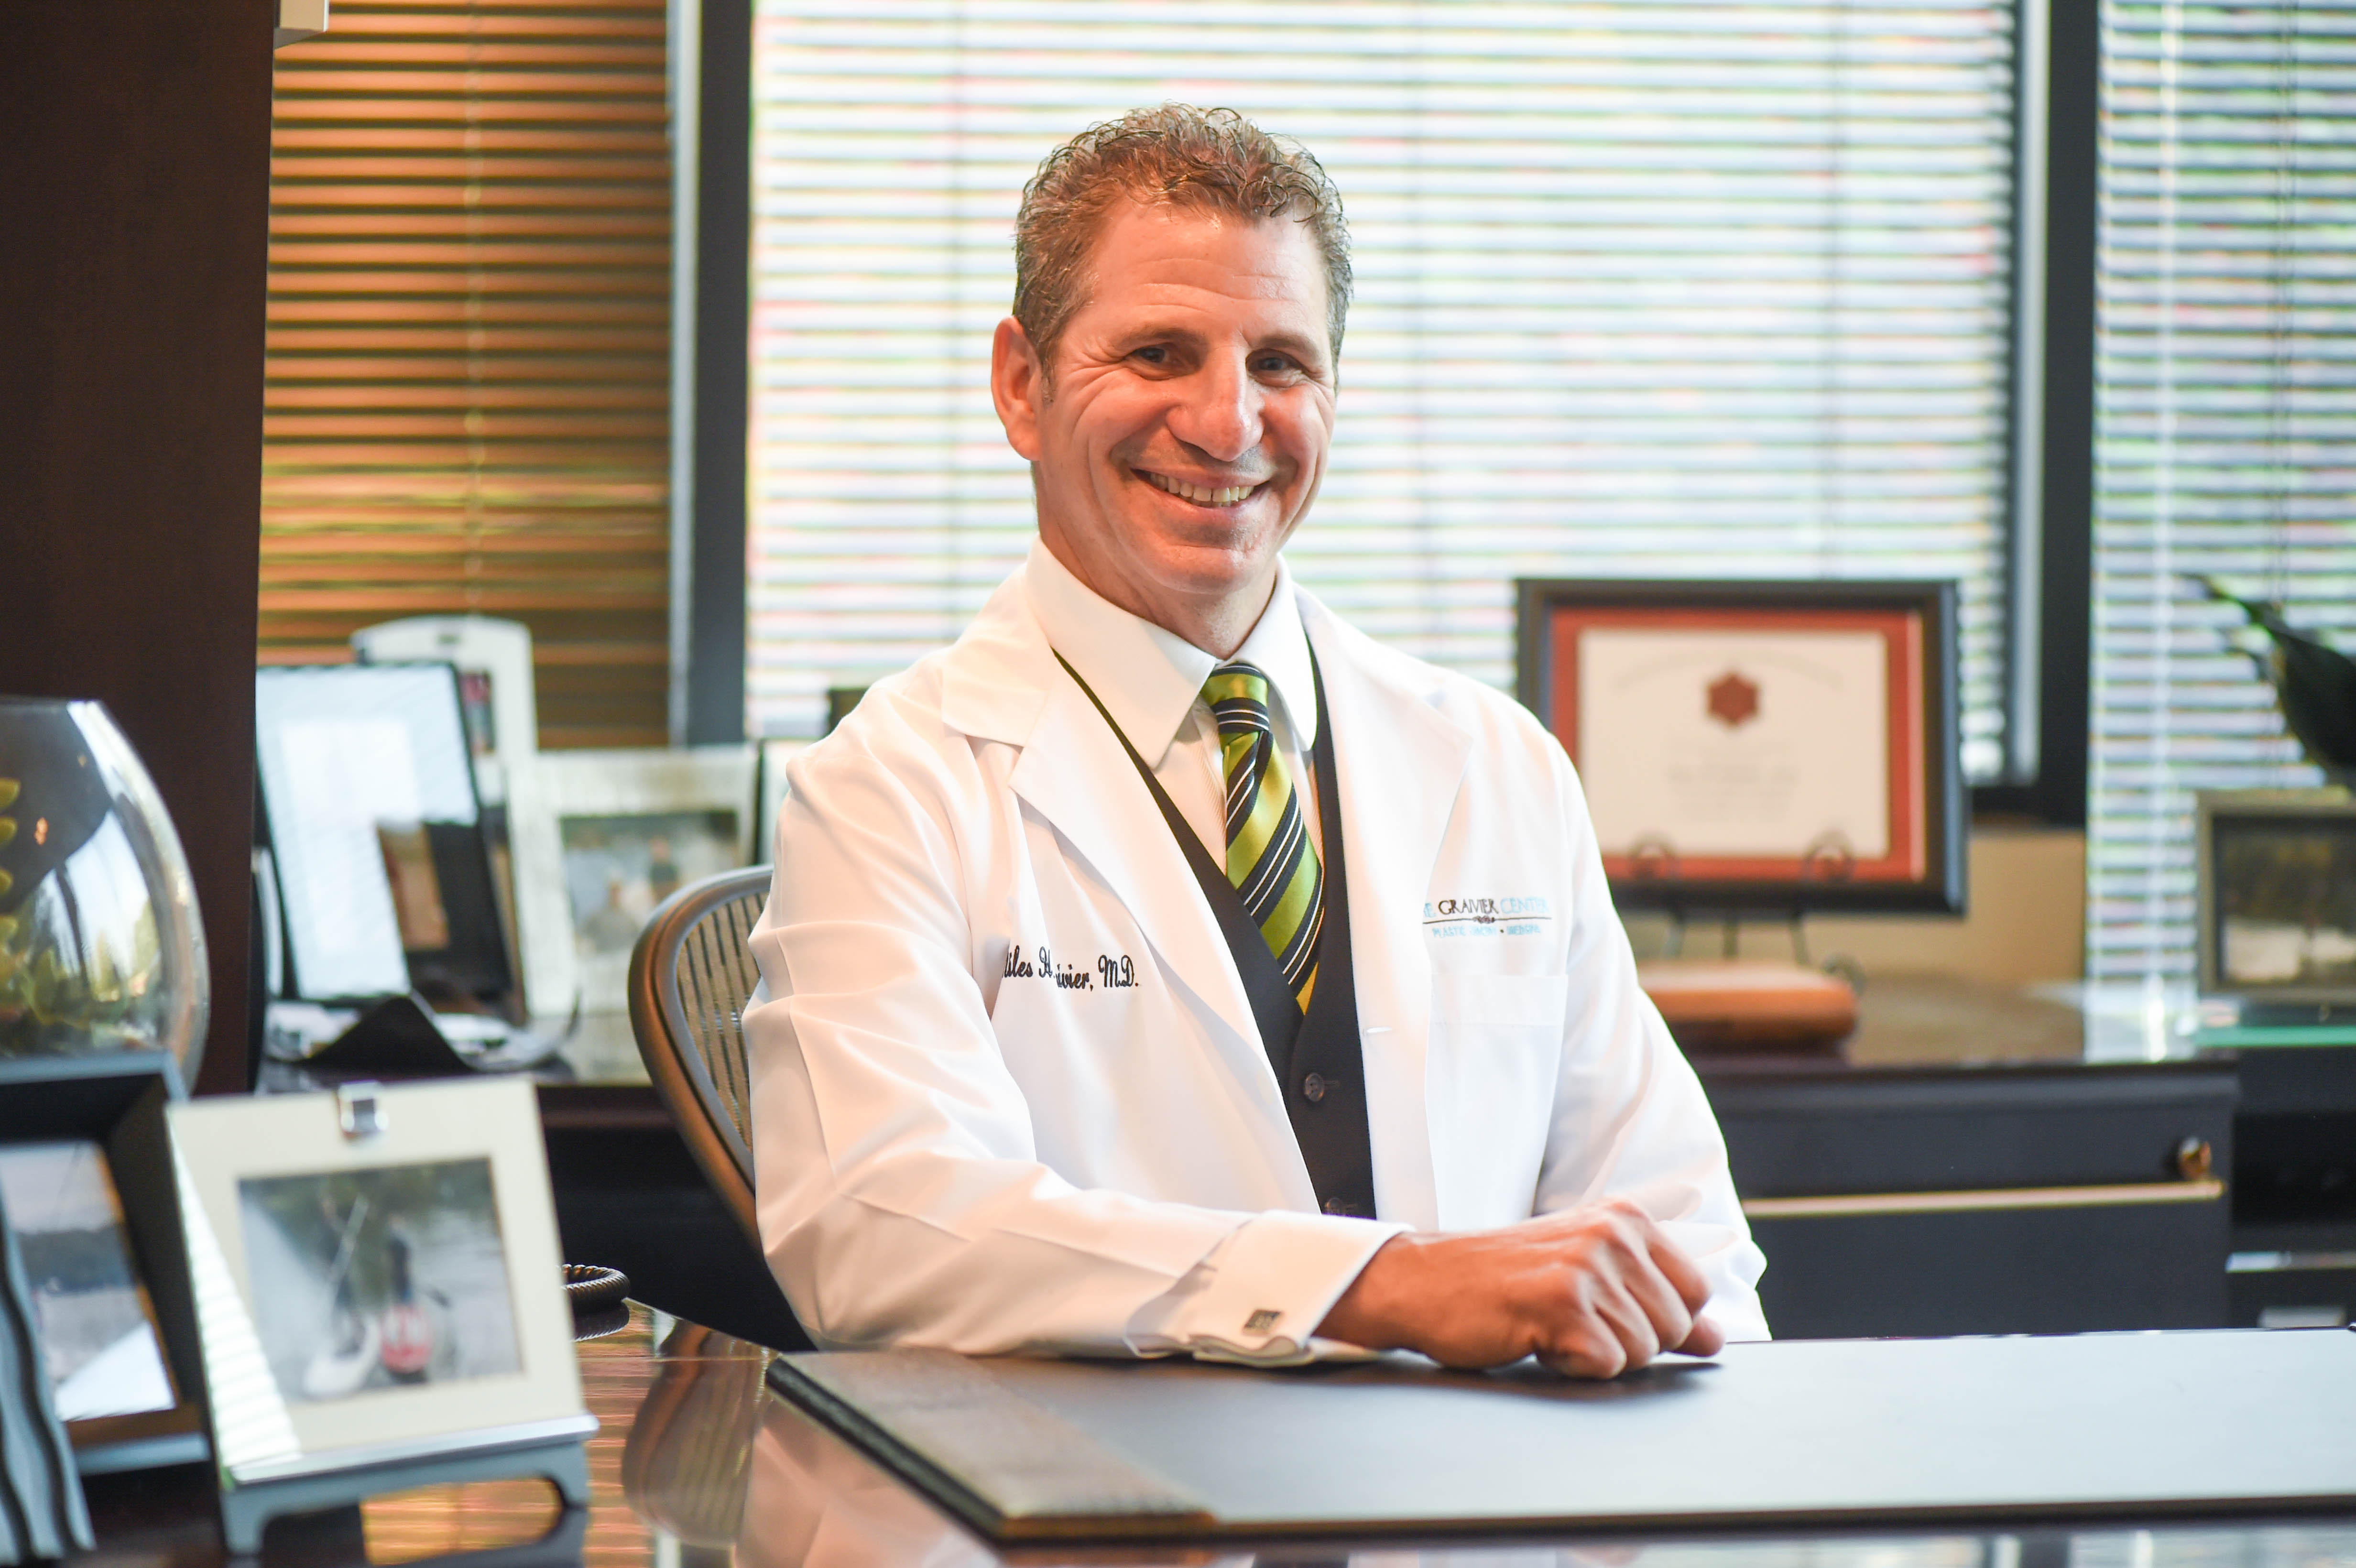 25 Years of Success: An Interview with Dr. Graivier